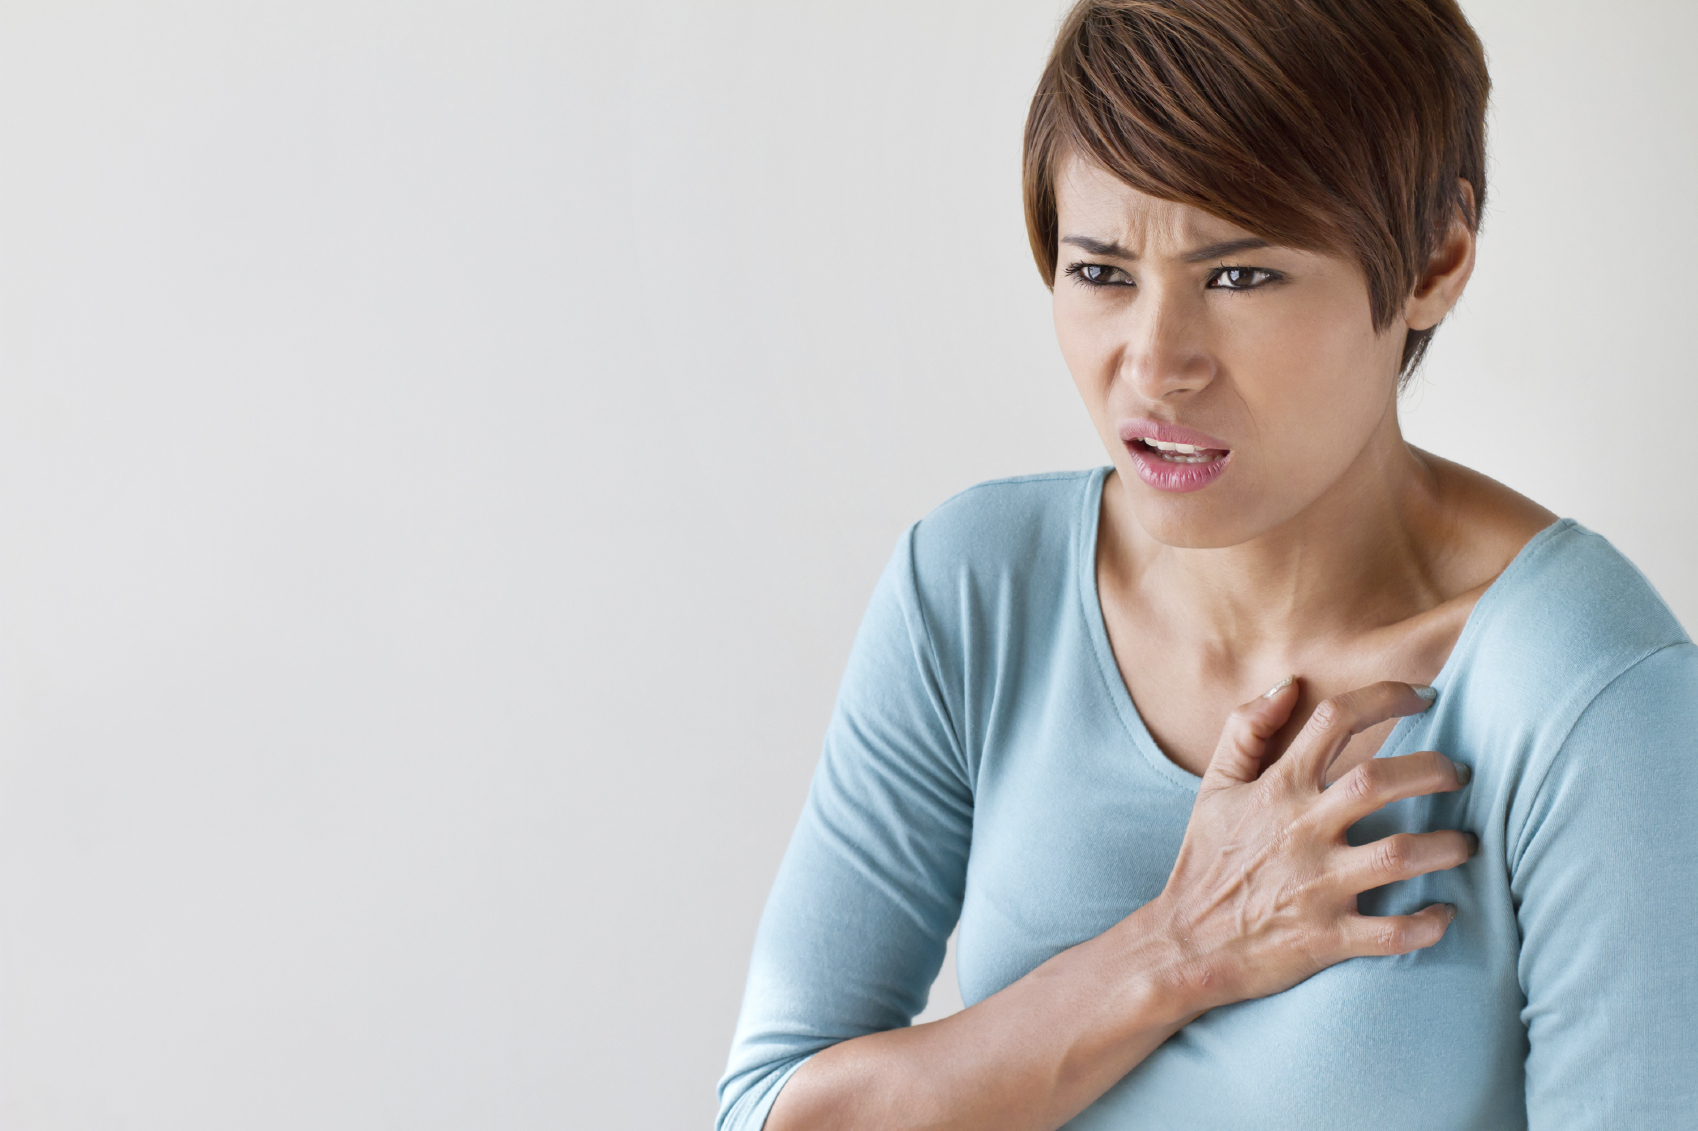 sick woman with sudden heart attack symptom